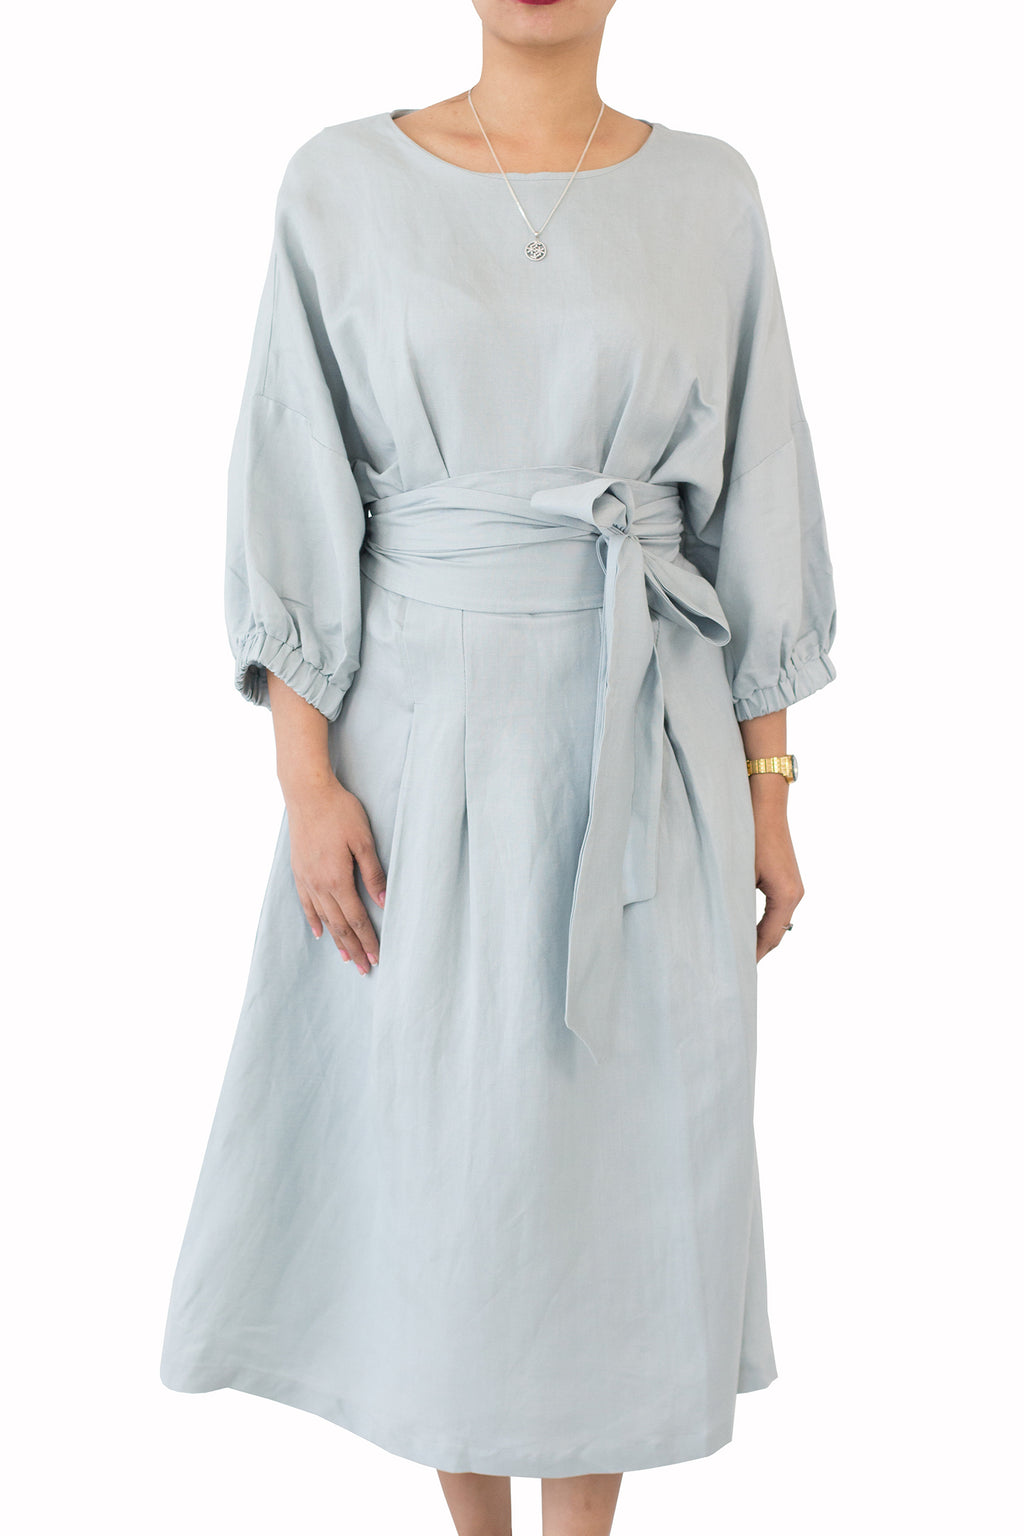 Kiswah - Dress With garter on the sleeve with belt Free size